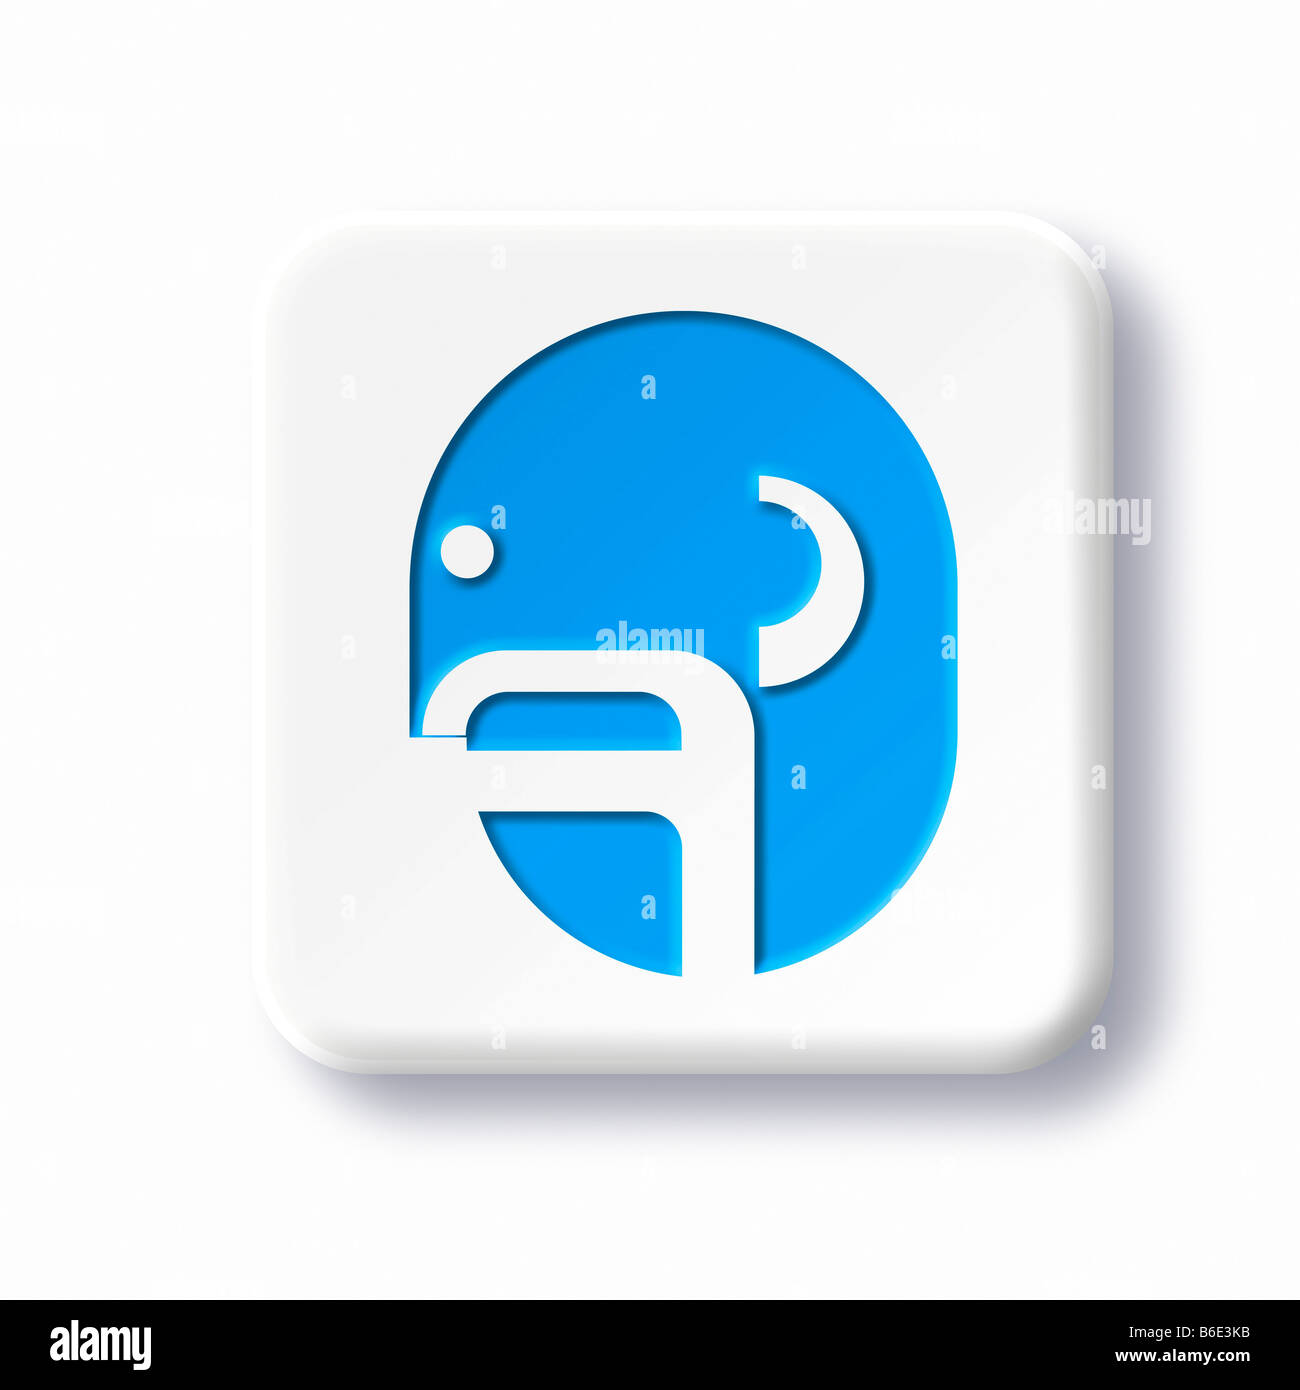 ENT (ear, nose and throat) medicine symbol against white background - Stock Image